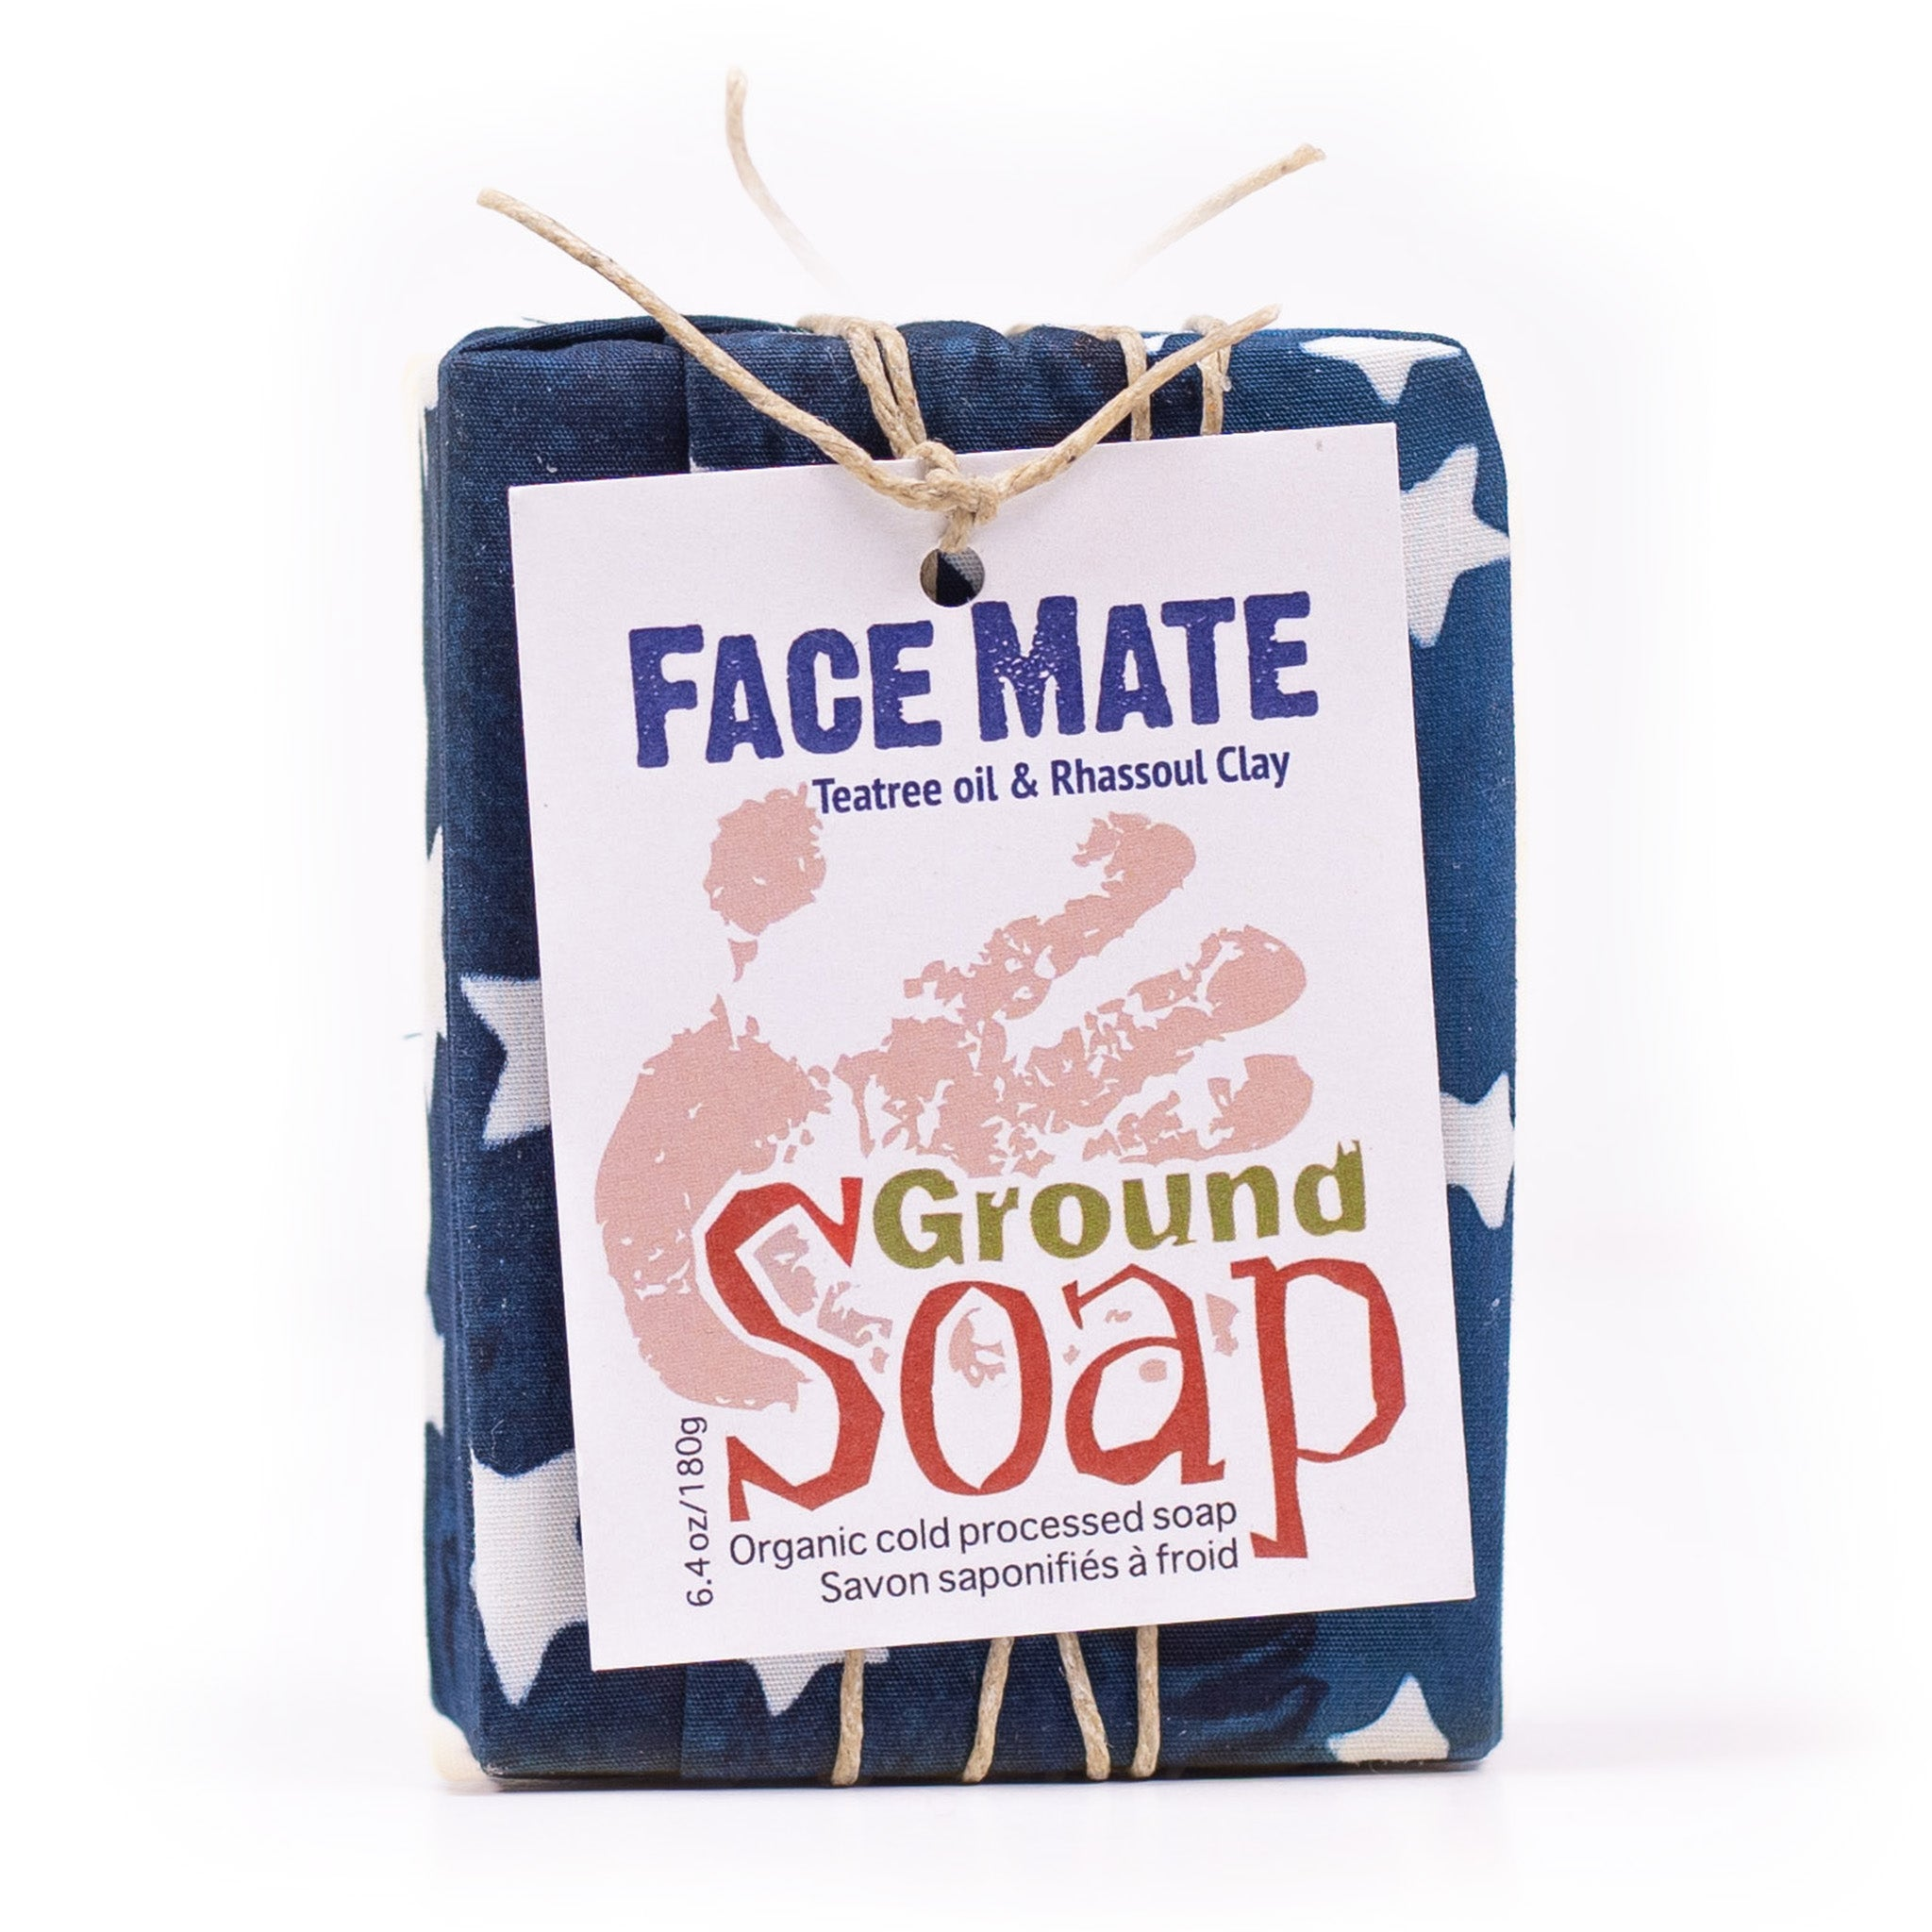 Face Mate Teatree essential oil and rhassoul clay organic bar soap from ground Soap.